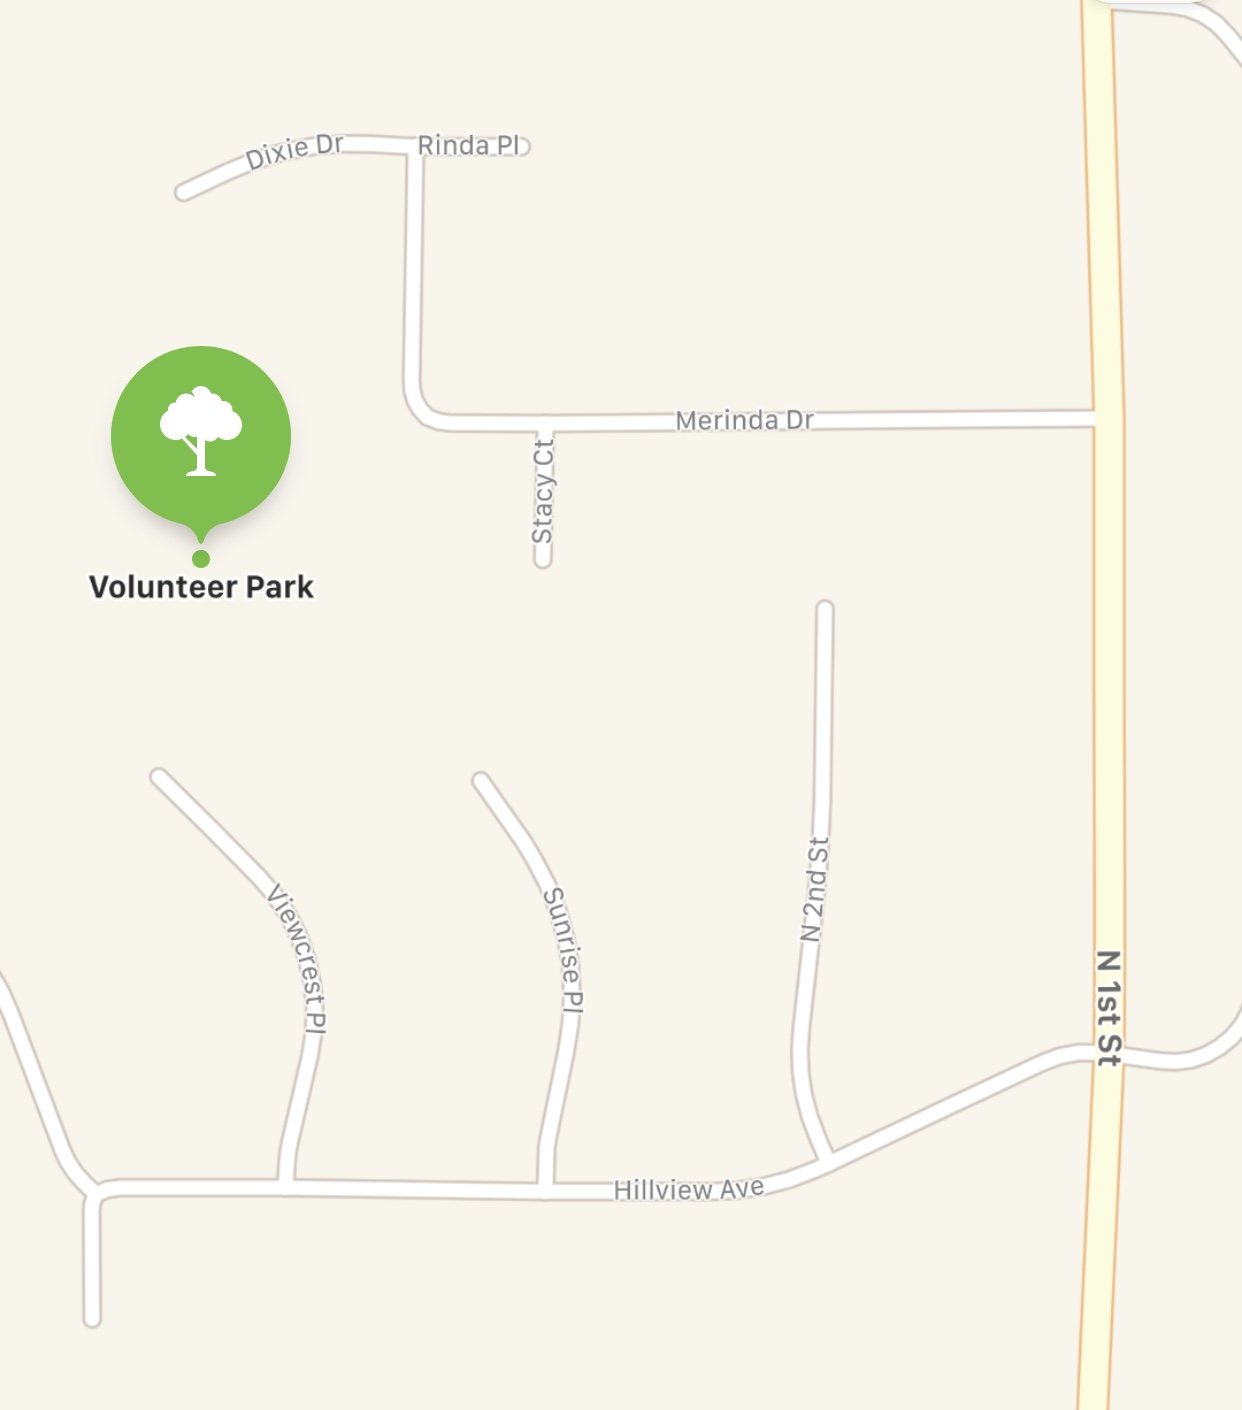 Directions: - Driving North on 1st St. in Selah-Turn left on Merinda Dr.-Continue straight until the road turns to the right.-Volunteer Park Parking Lot will be on your left.